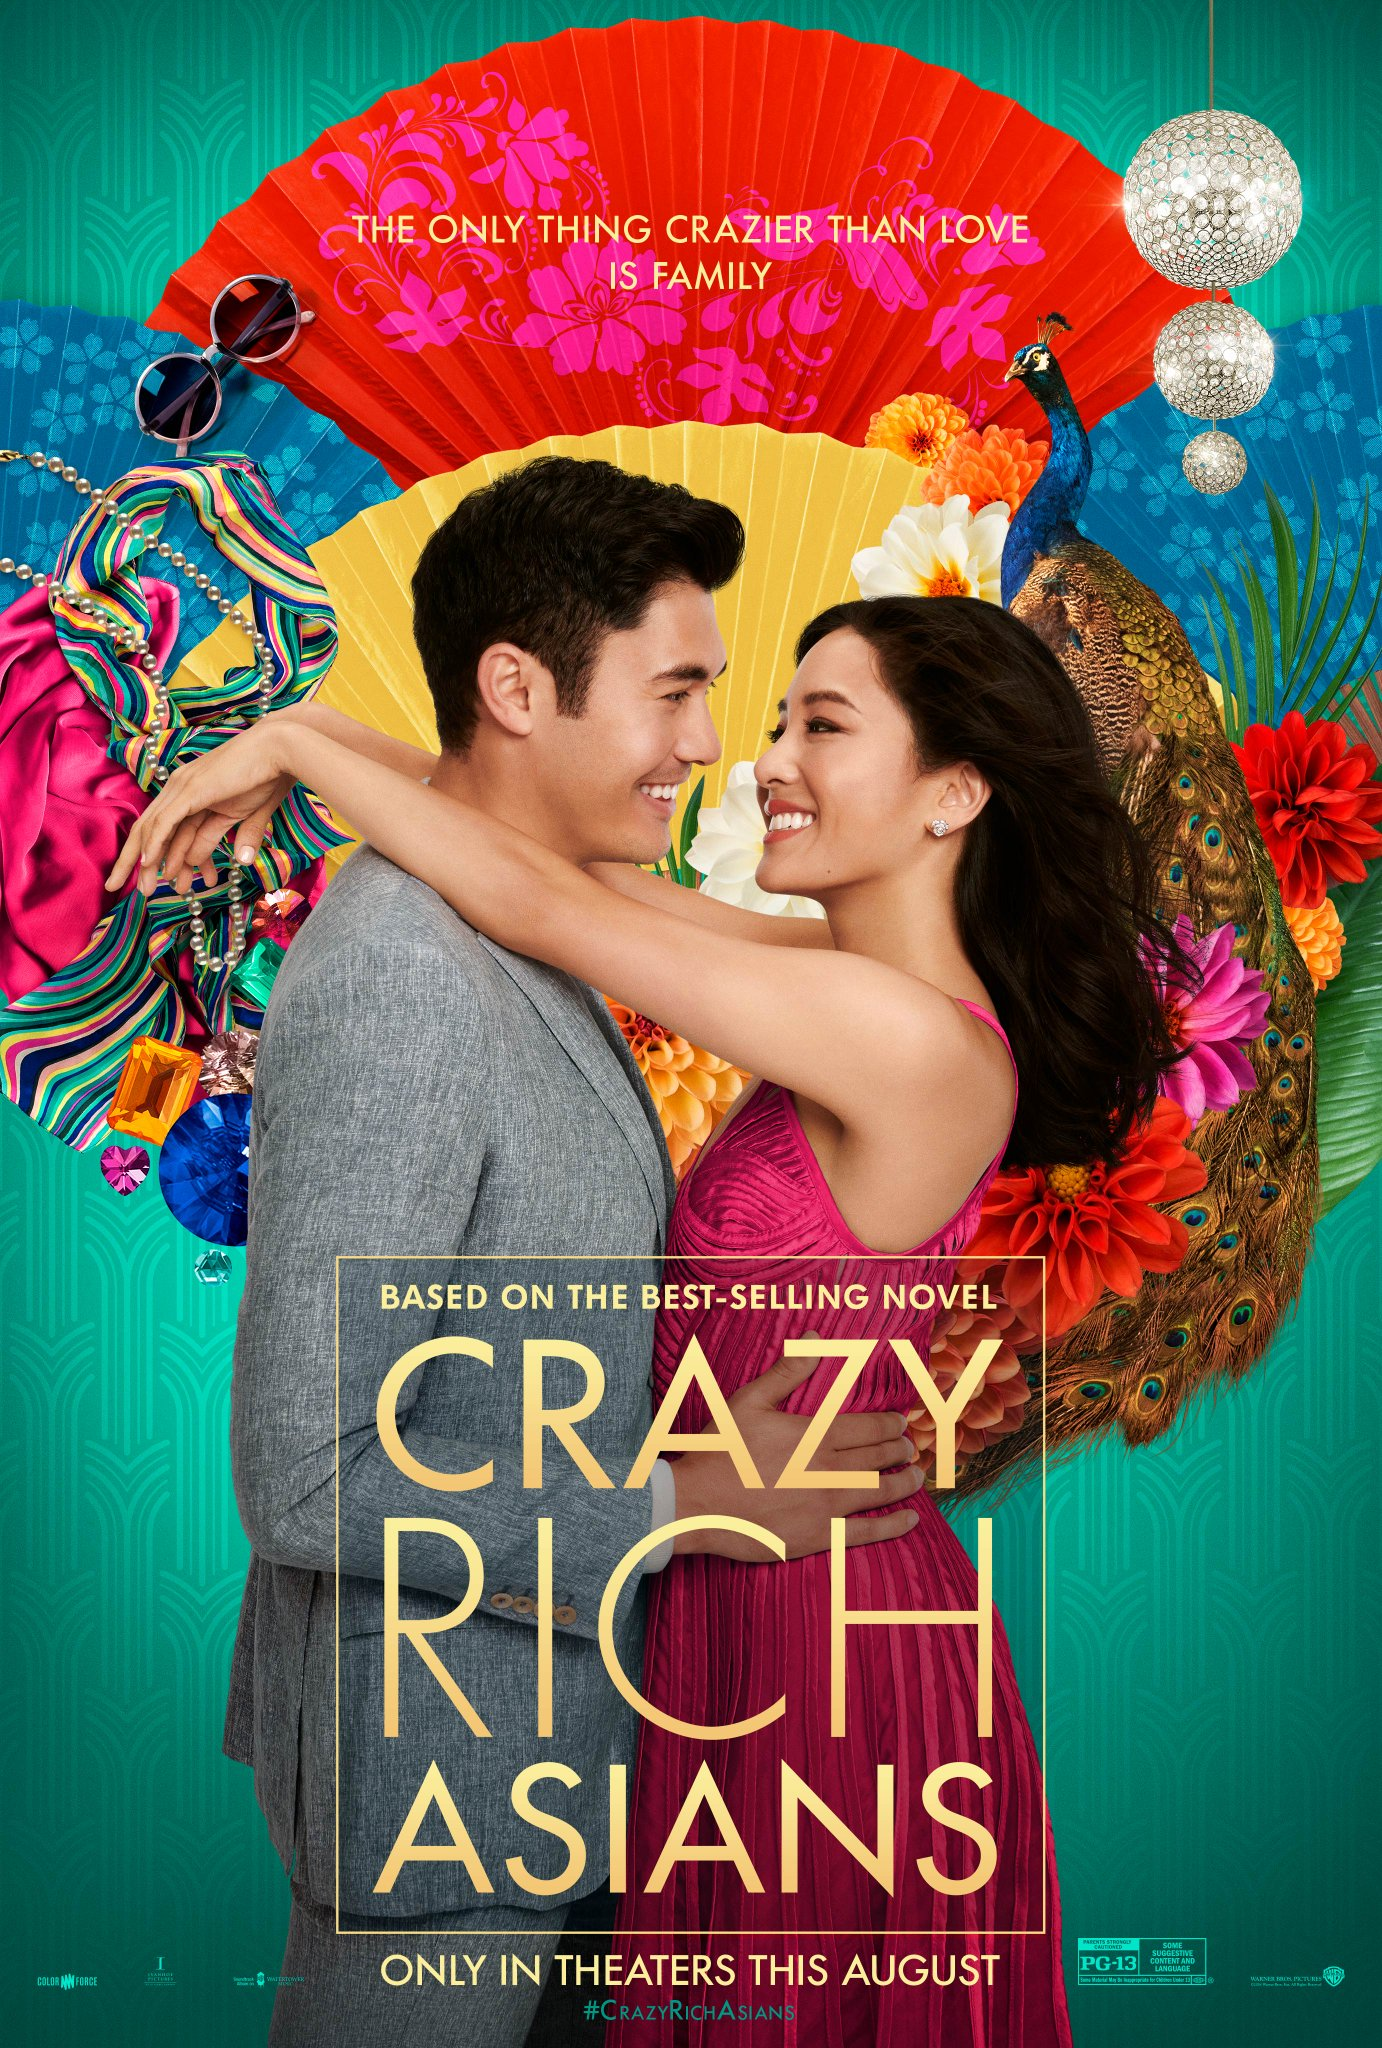 Crazy Rich Asians (2018) - Directed by: Jon M. ChuStarring: Constance Wu, Henry Golding, Michelle Yeoh, Lisa Lu, Awkwafina, Ken JeongRated: PG-13 for Suggestive Content and LanguageRunning Time: 2 hTMM Score: 3 stars out of 5STRENGTHS: Exploration of Culture, Attacks ClassismWEAKNESSES: Formulaic, Glorifies Materialism